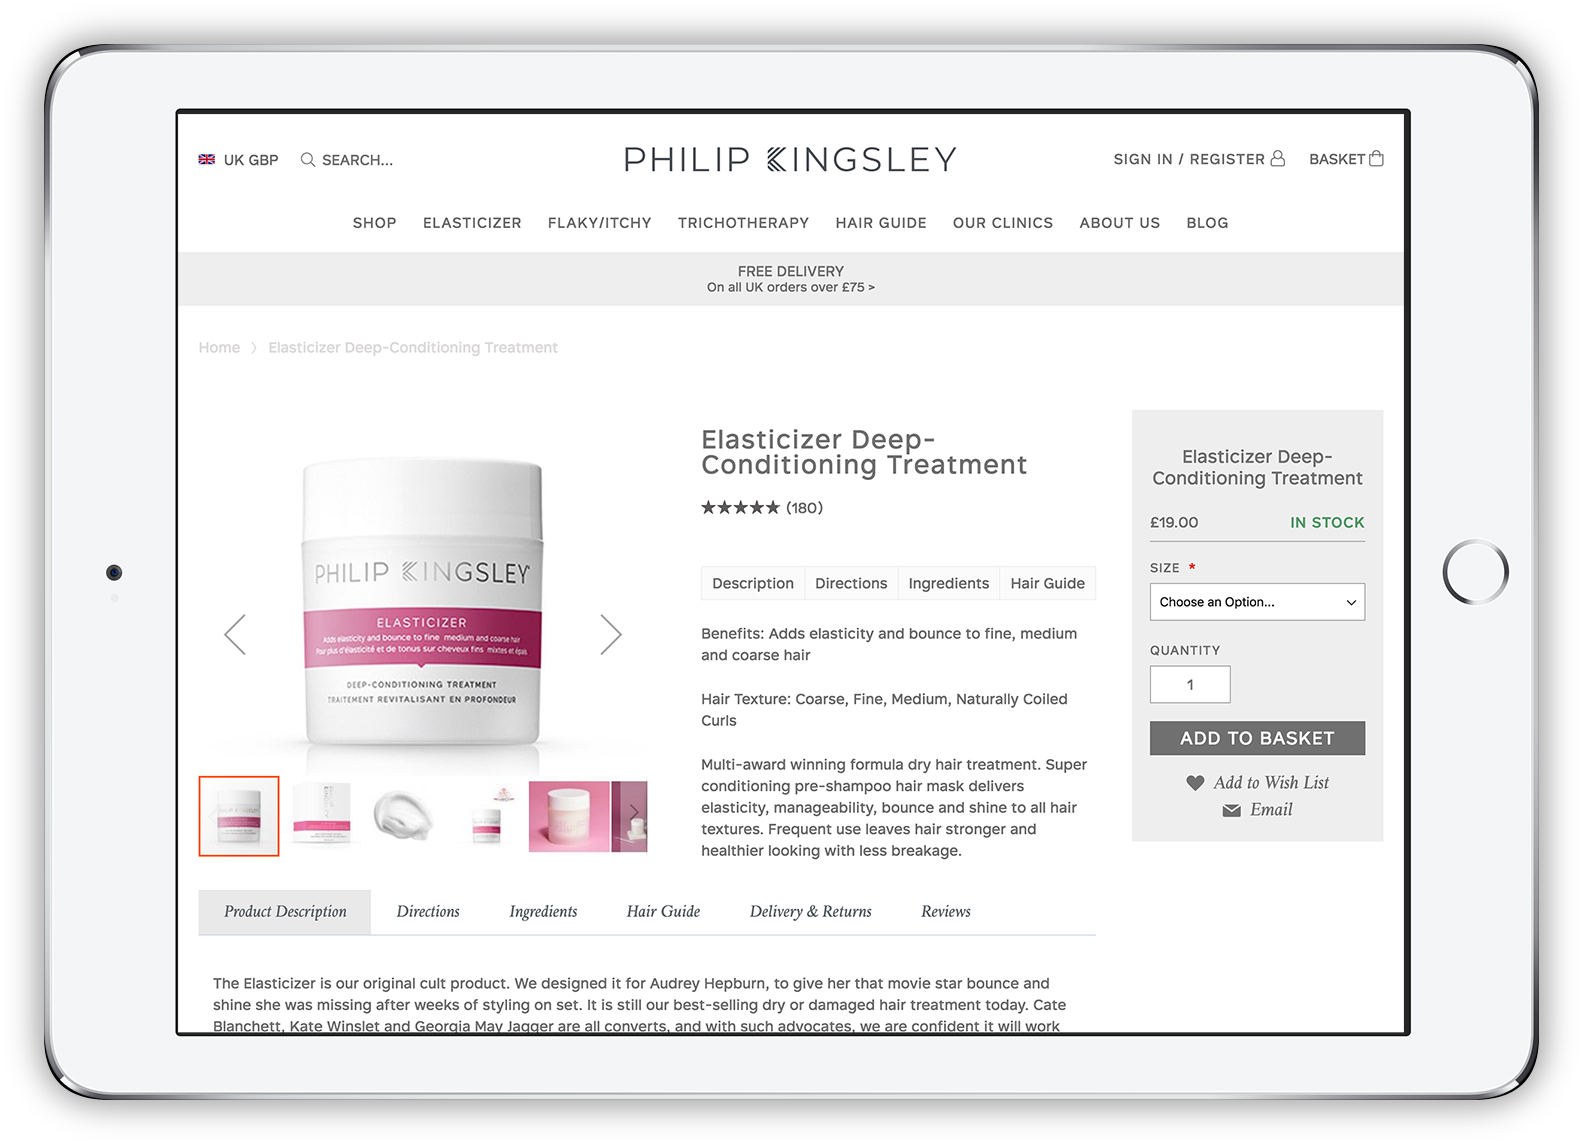 Philip Kingsley Products carousel 2